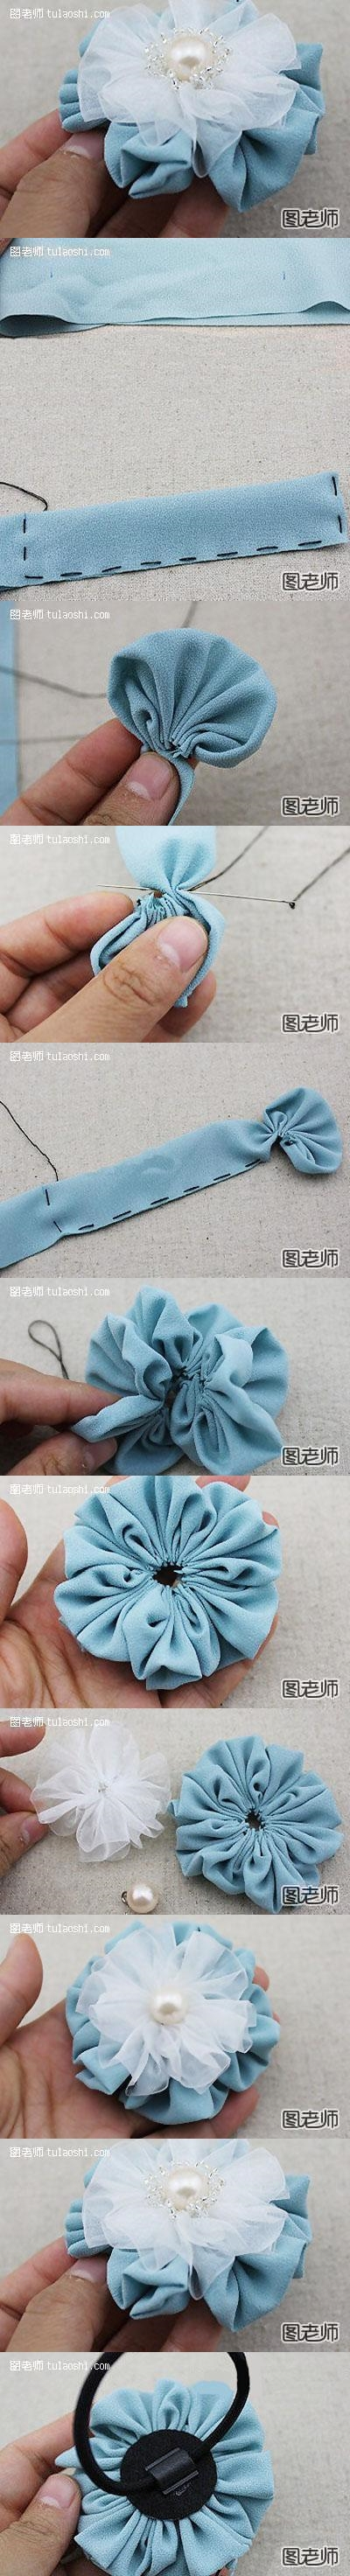 How to make lovely blue hair flower step by step DIY instructions